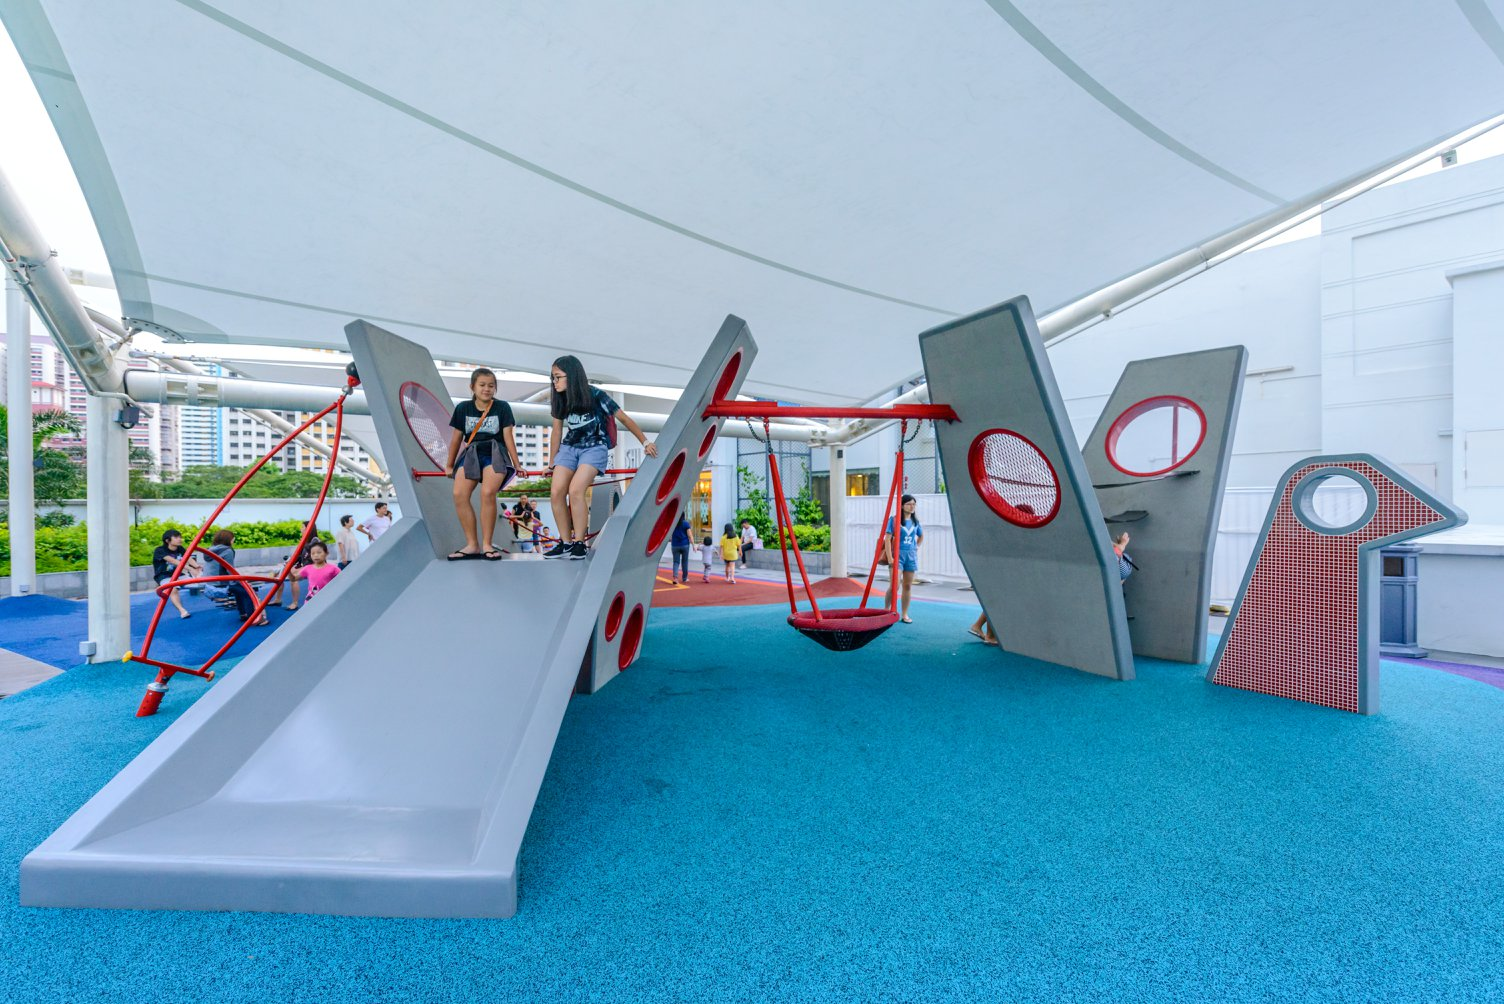 free playgrounds in mall - tiong bahru plaza mosaic playground